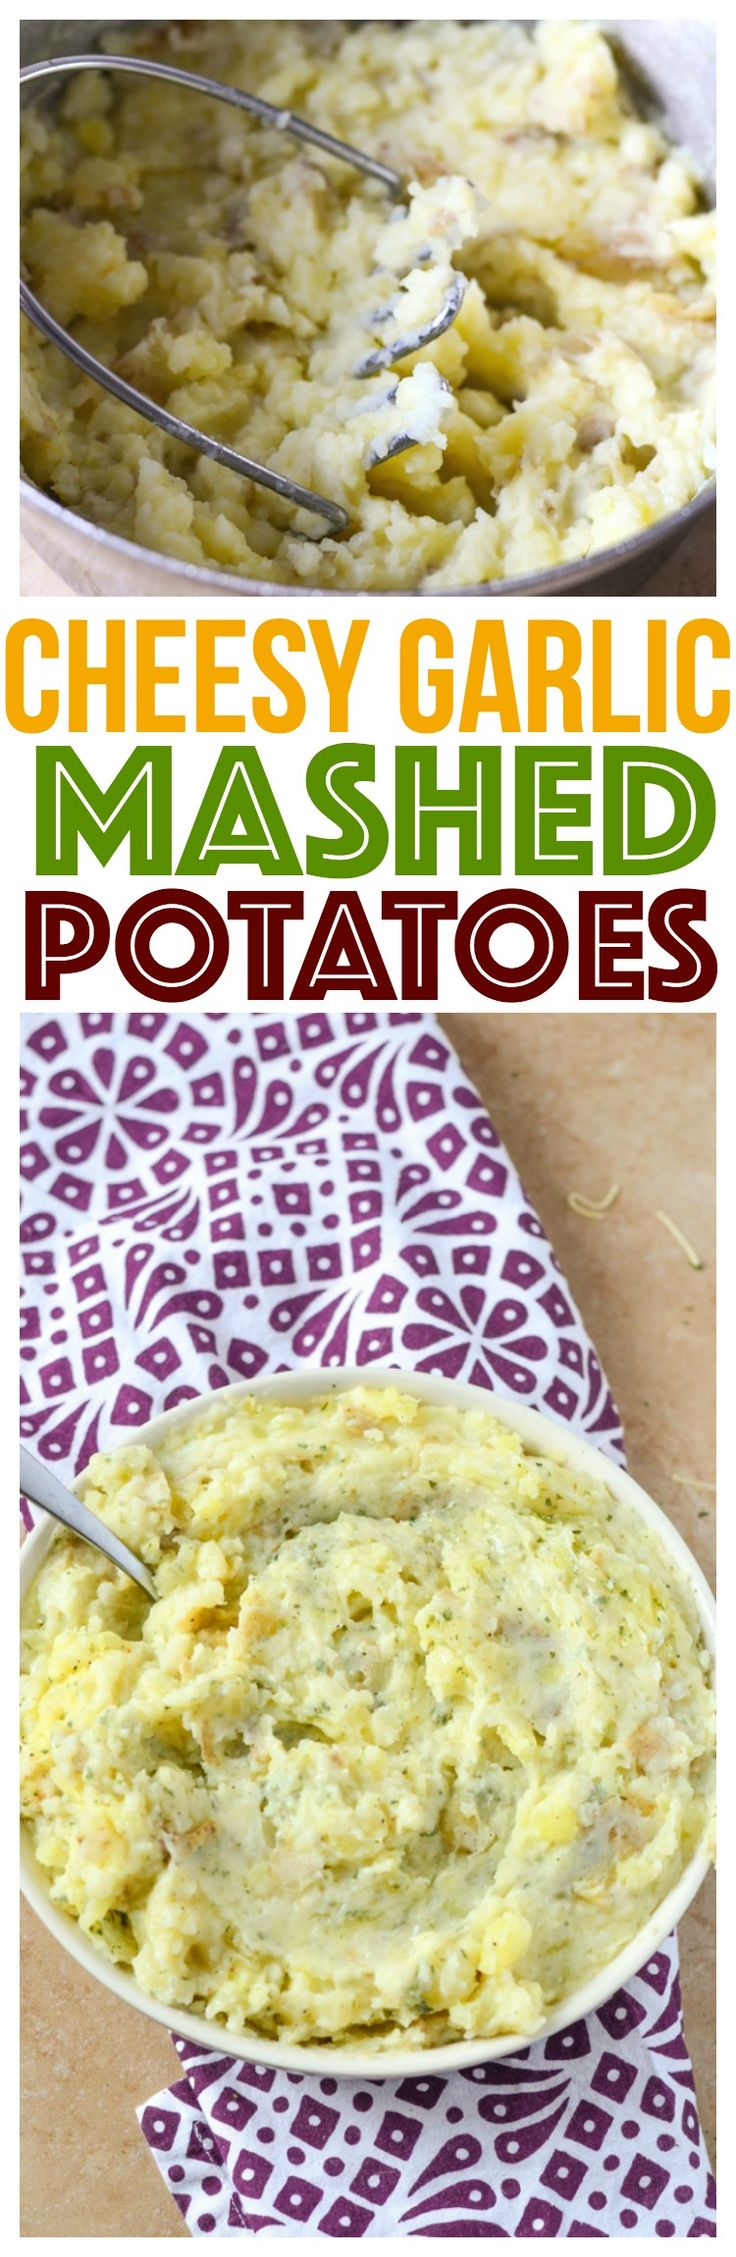 Kid Friendly Cheesy Garlic Mashed Potatoes are the perfect holiday side dish that everyone will enjoy. Vegetarian and delicious! via @CourtneysSweets